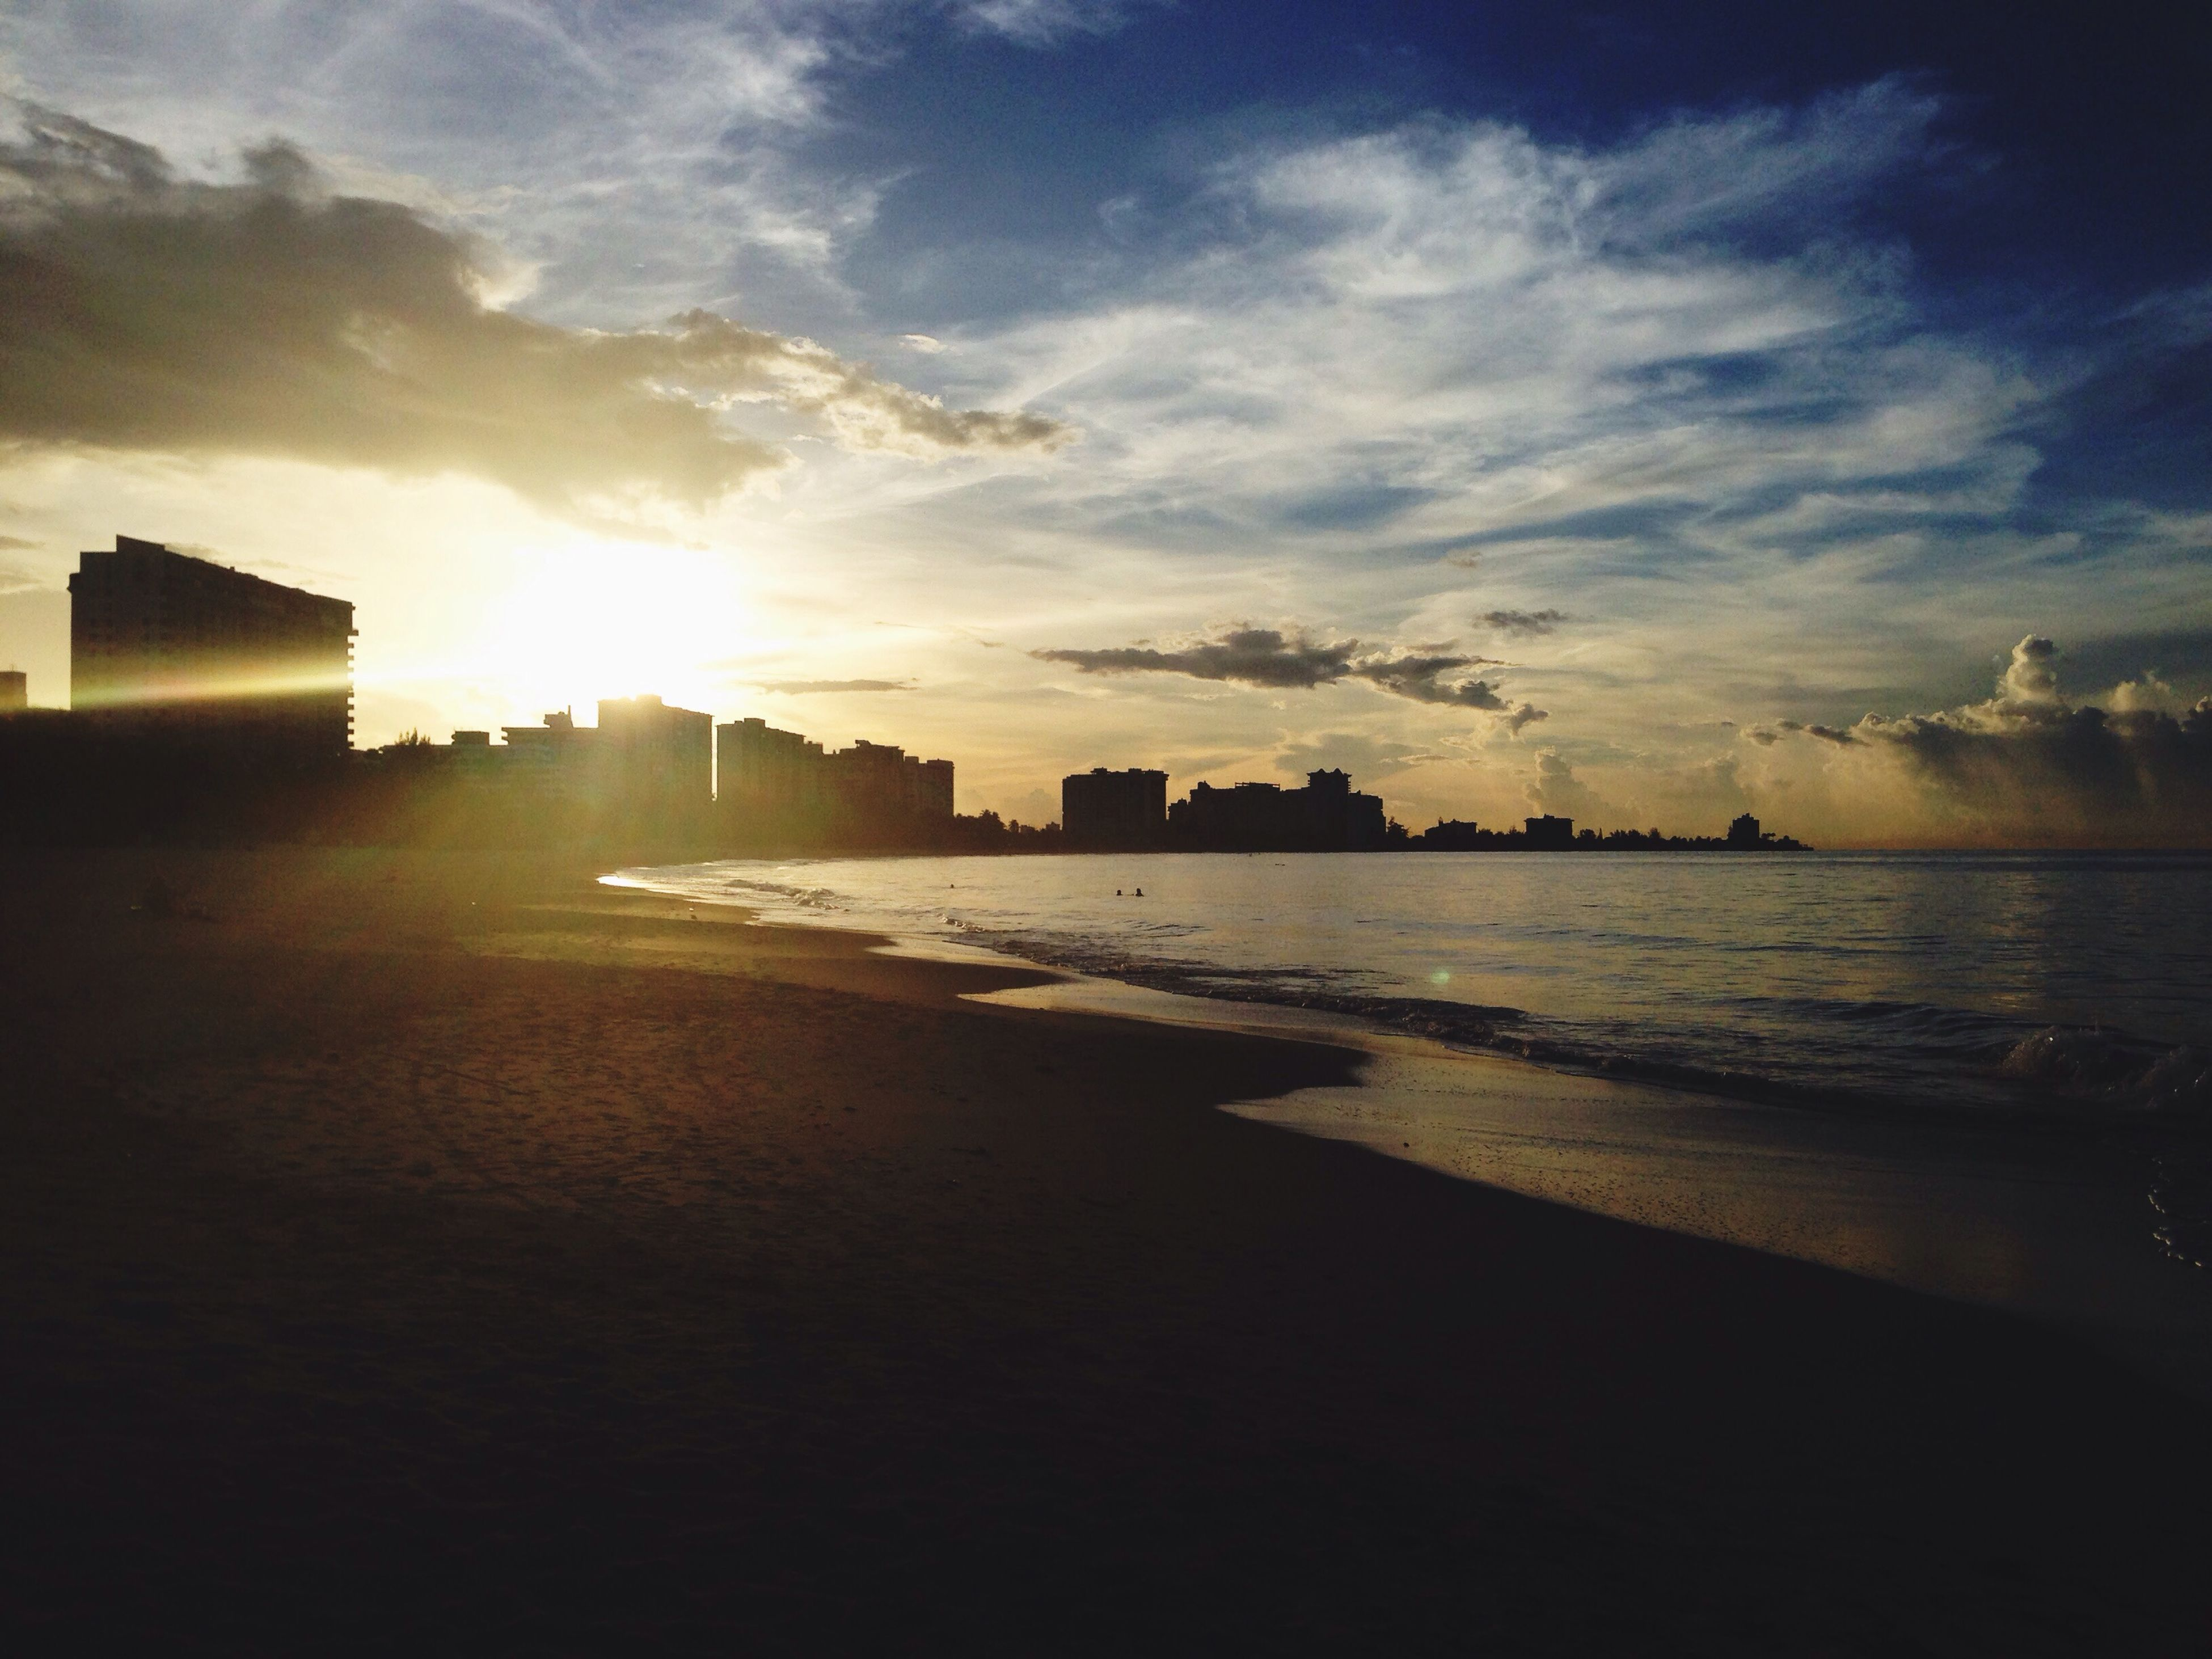 sea, water, sunset, sky, beach, sun, building exterior, built structure, architecture, shore, sunlight, cloud - sky, scenics, sand, beauty in nature, tranquil scene, tranquility, nature, sunbeam, horizon over water